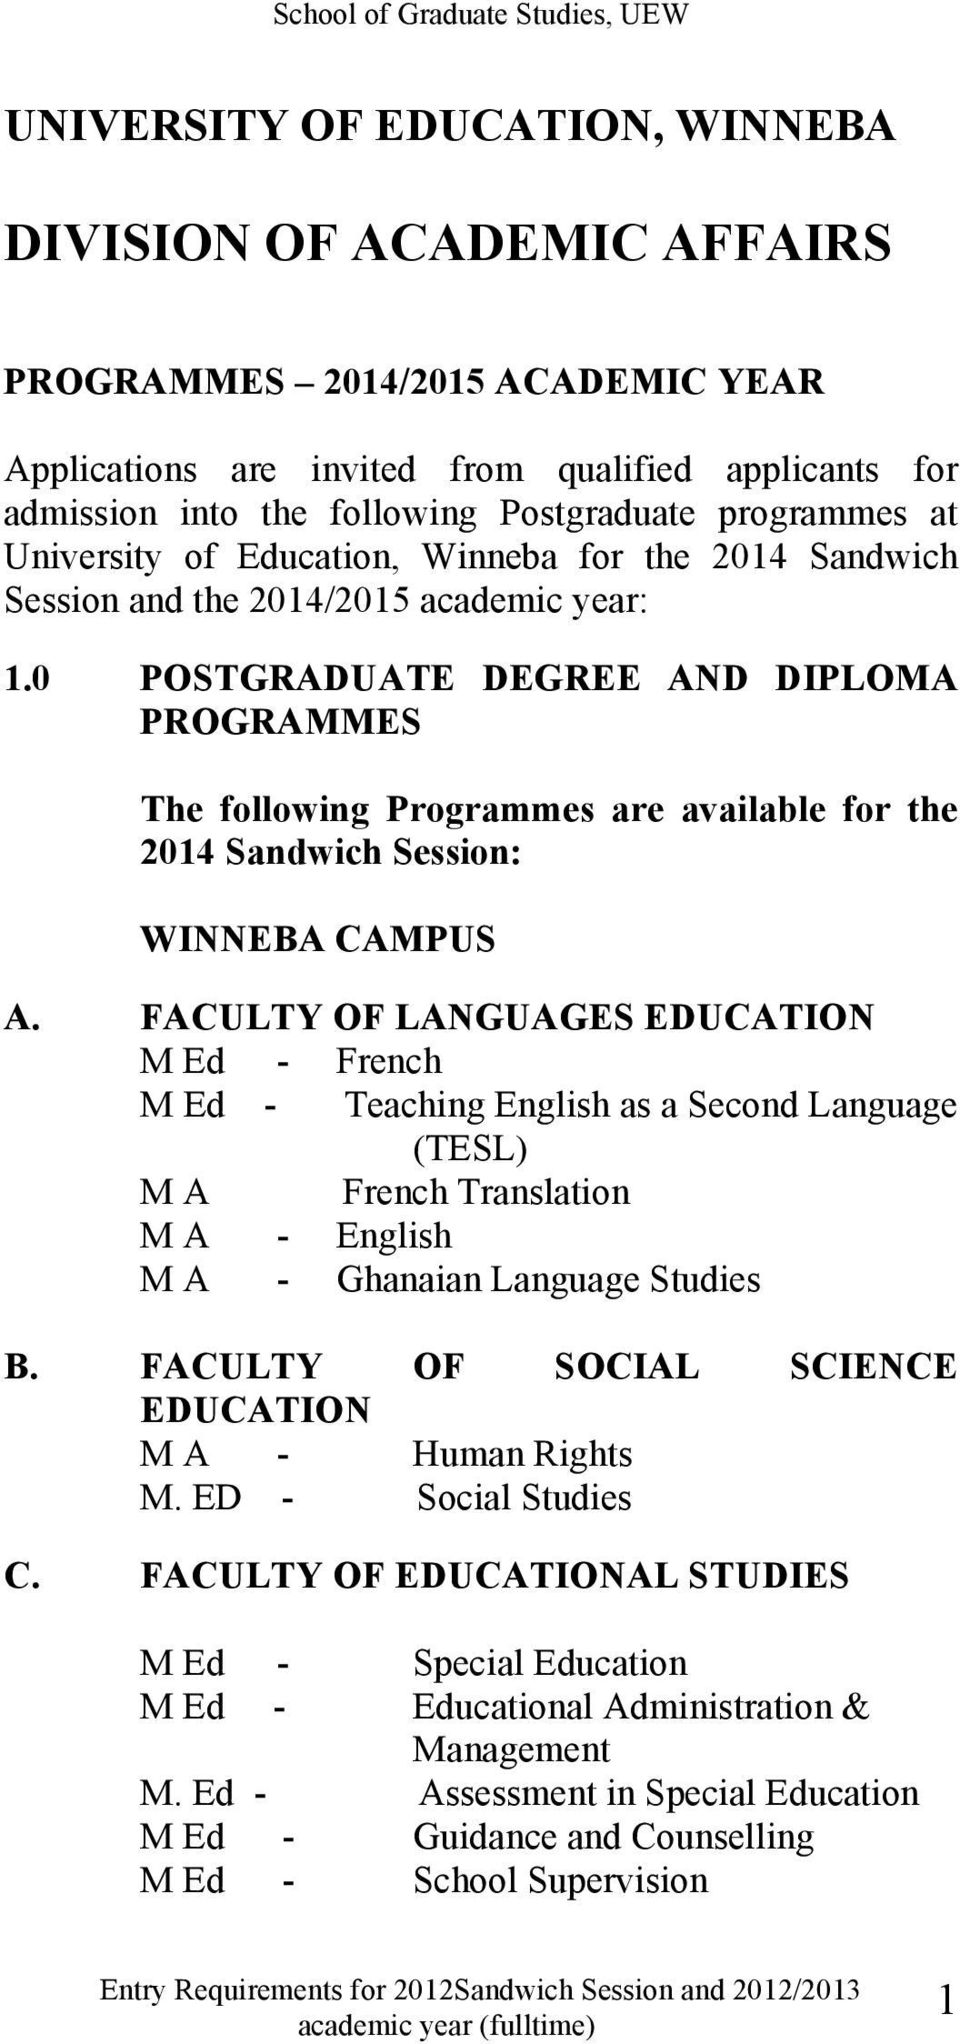 0 POSTGRADUATE DEGREE AND DIPLOMA PROGRAMMES The following Programmes are available for the 2014 Sandwich Session: WINNEBA CAMPUS A.